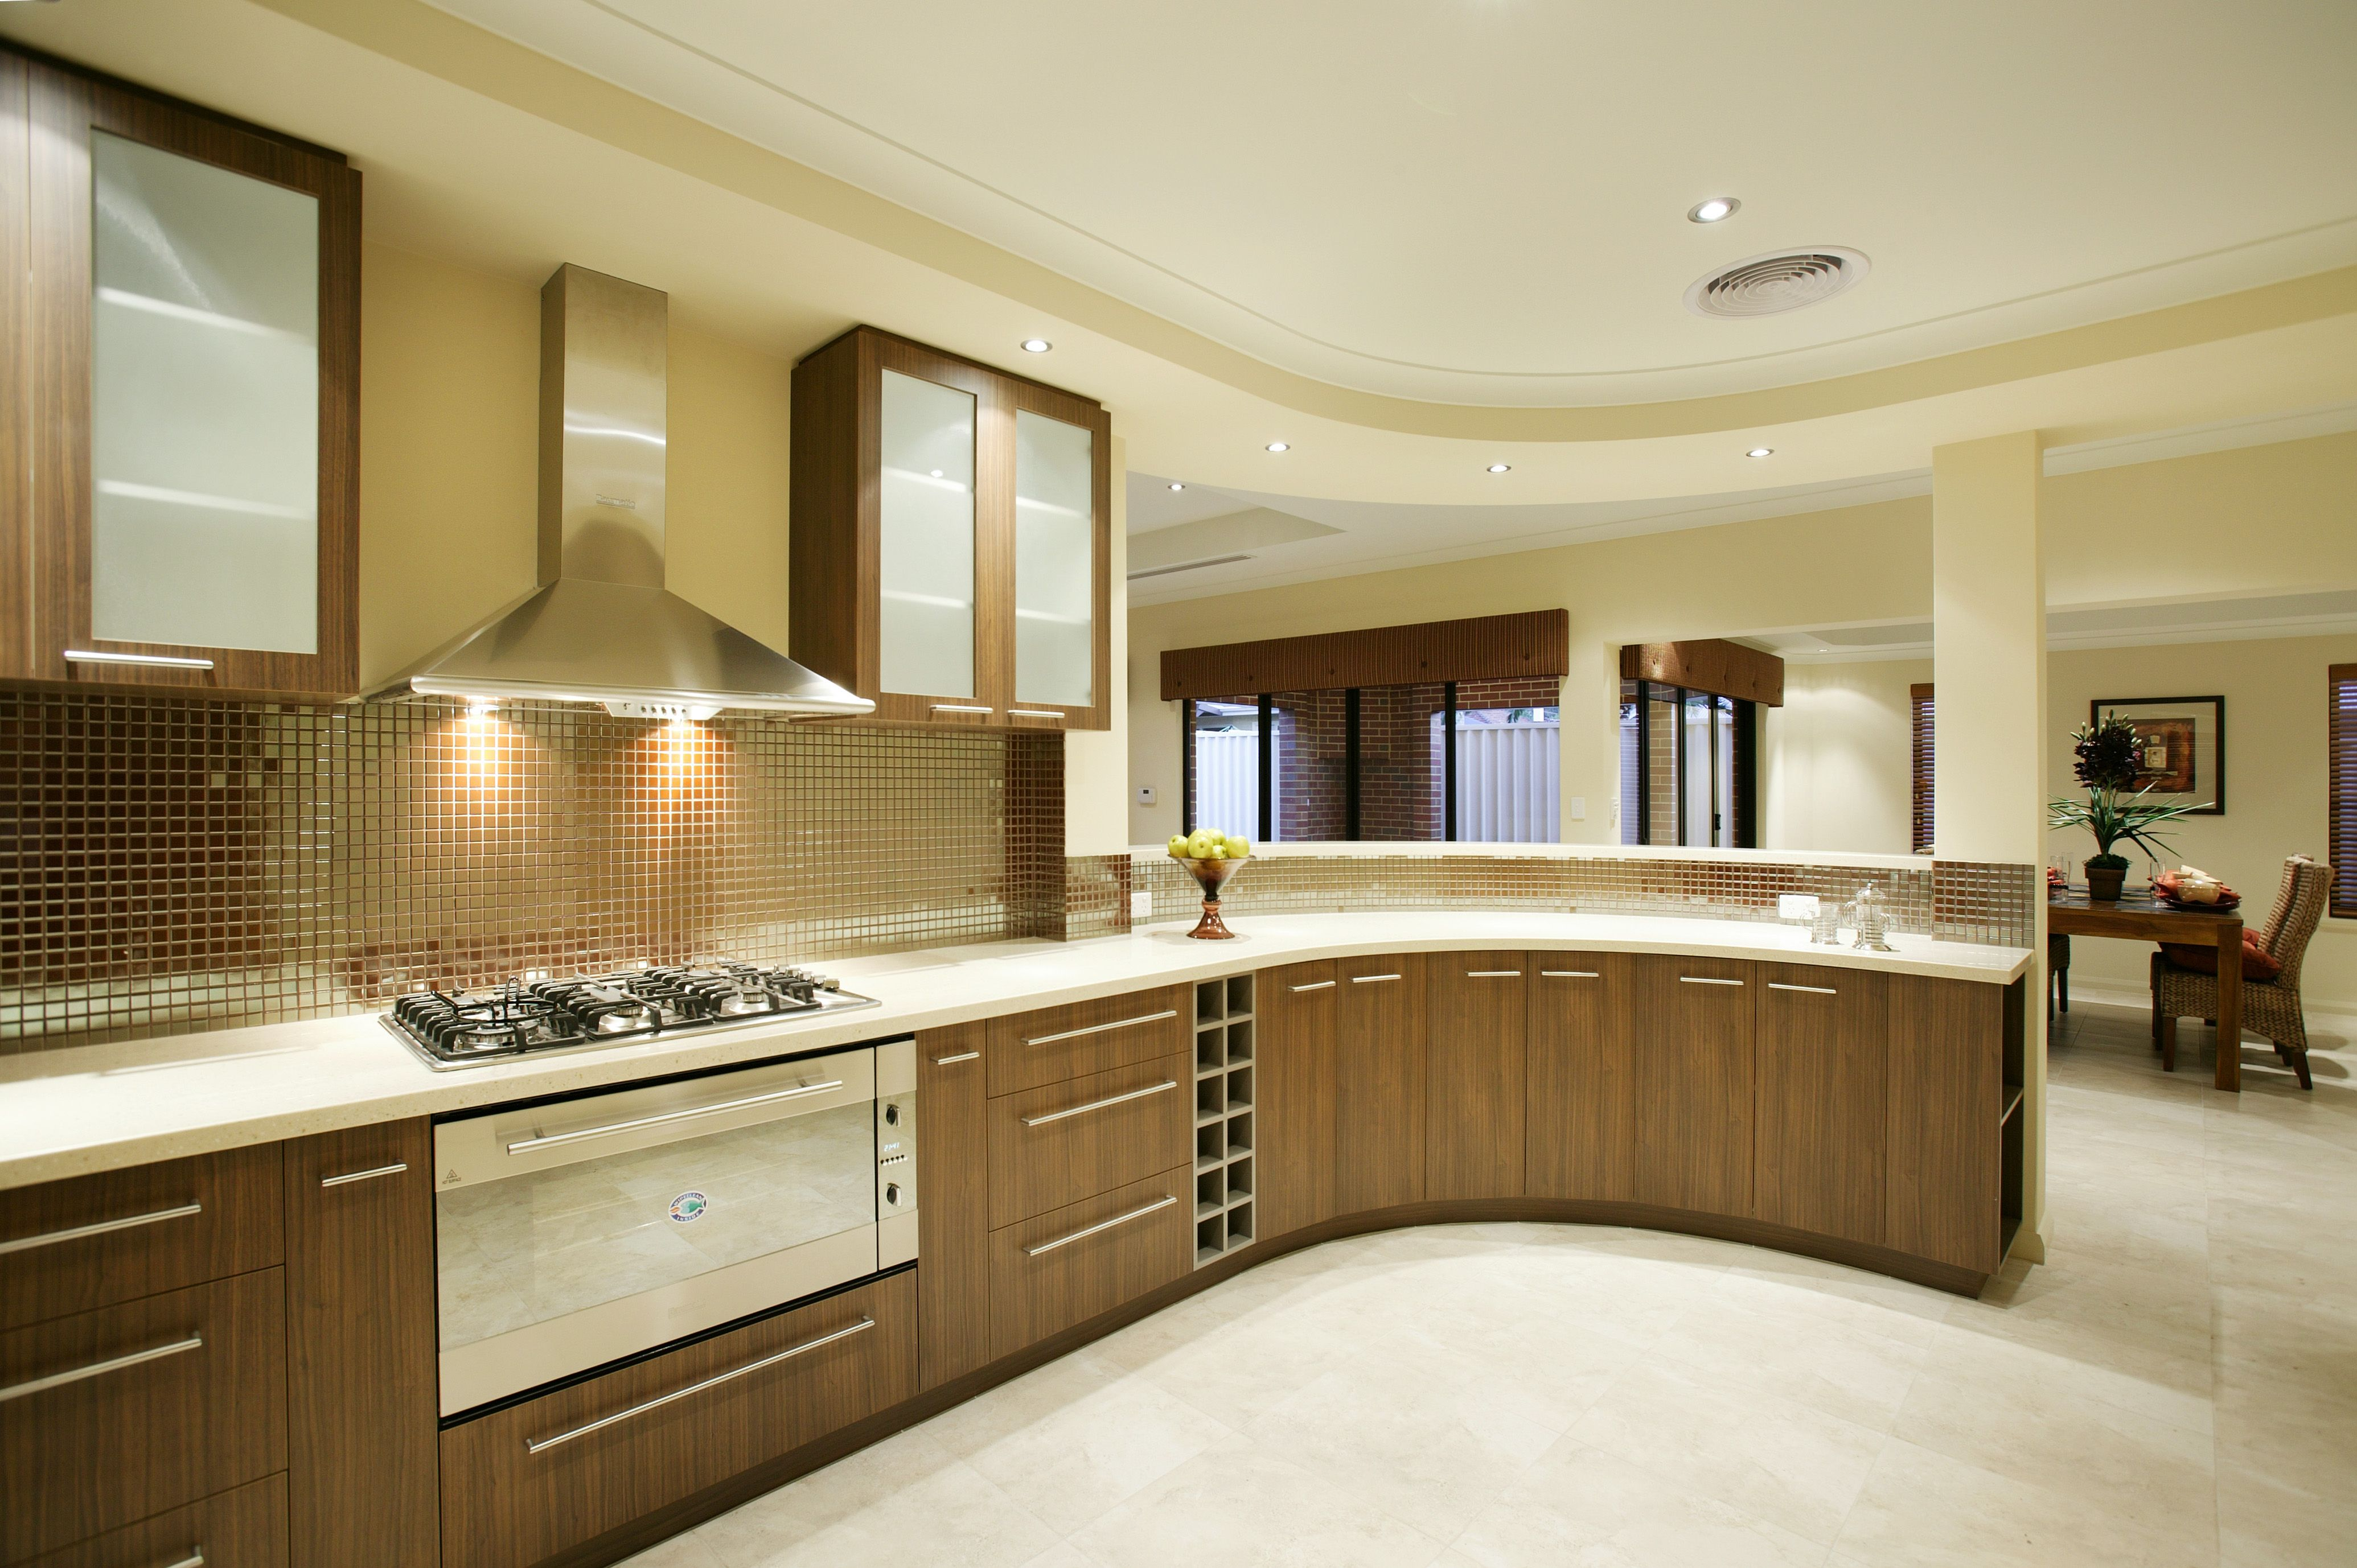 Kitchen Interior Designer Kitchens Home Art Blog  4140X2755Px Amusing Kitchen Design Gallery Ideas Decorating Inspiration